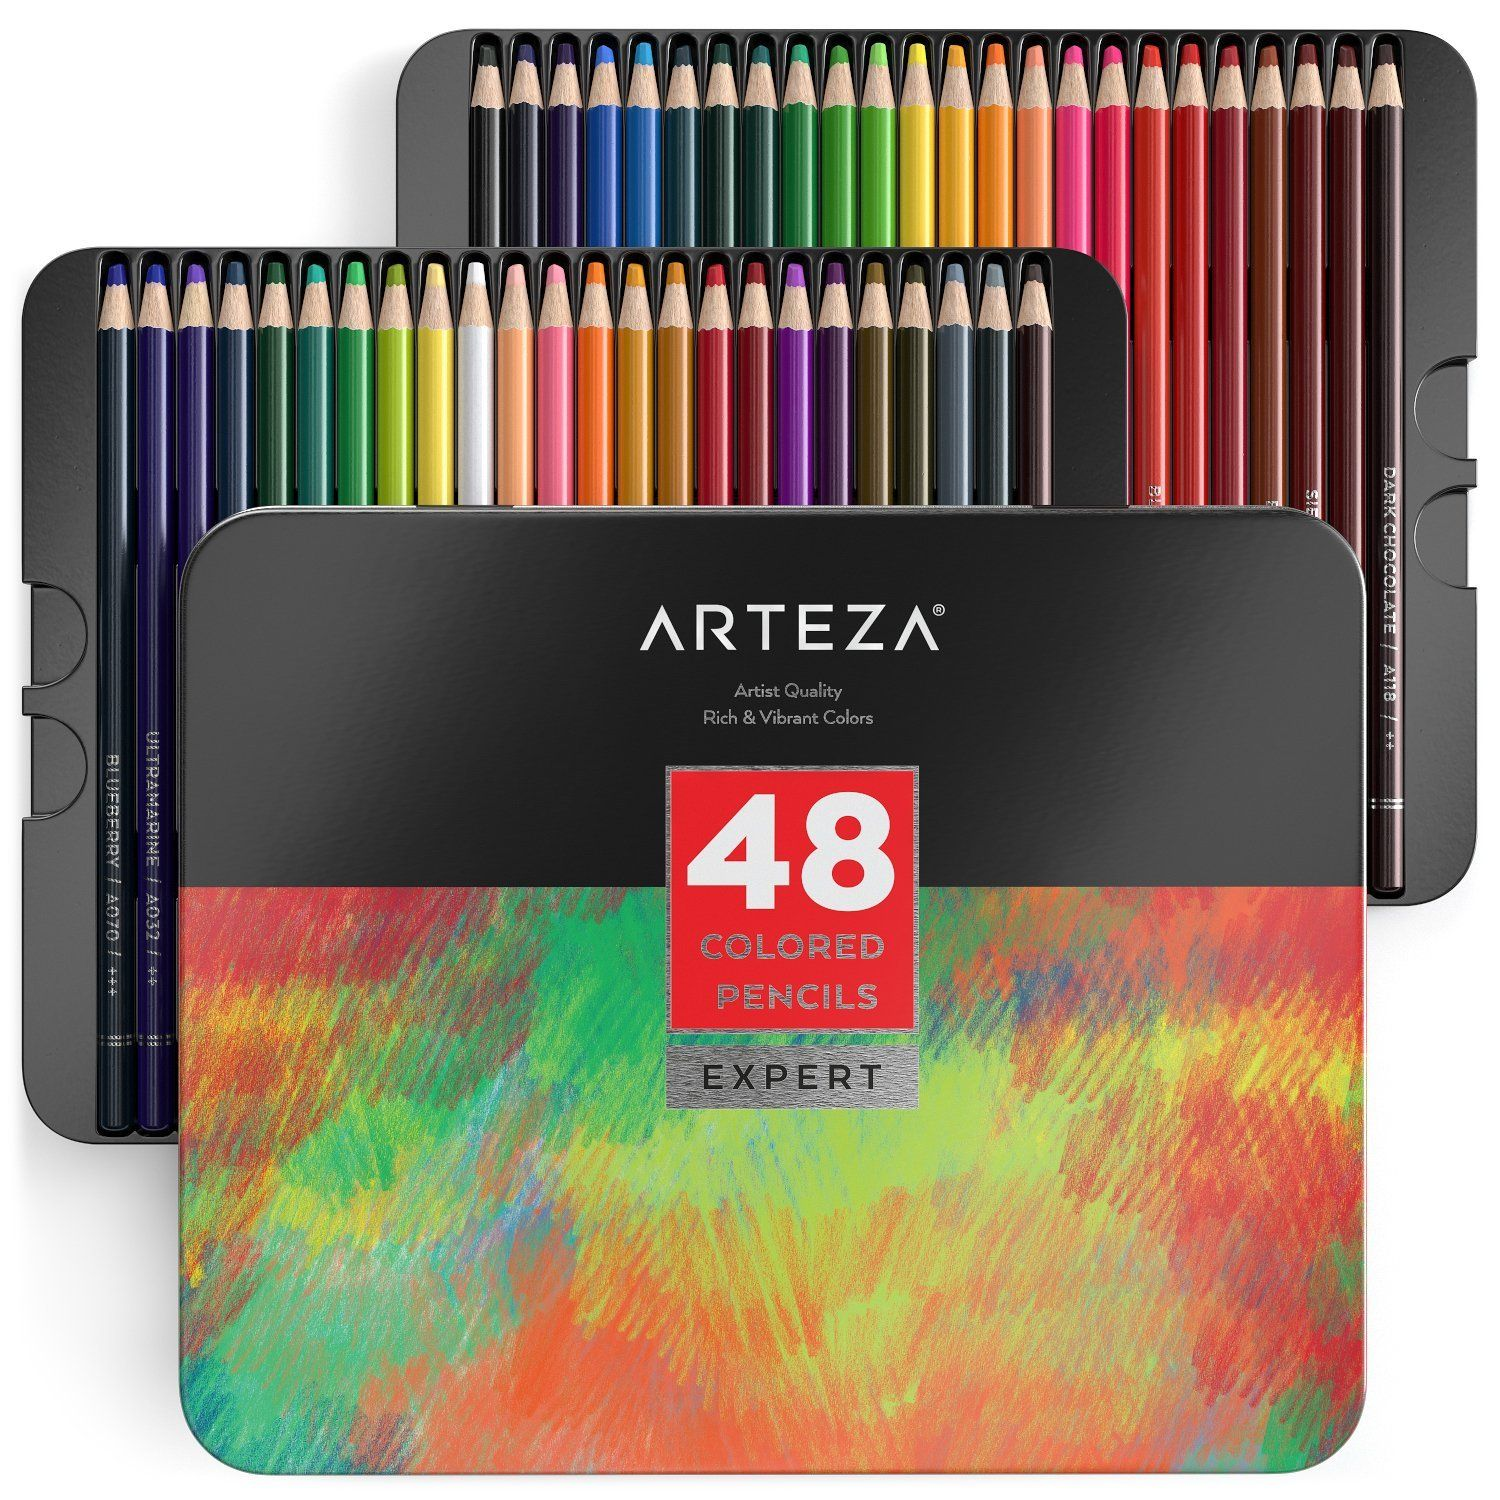 Amazon 48 Colored Pencils Set Of 48 Colors With Deal 12 15 Reg